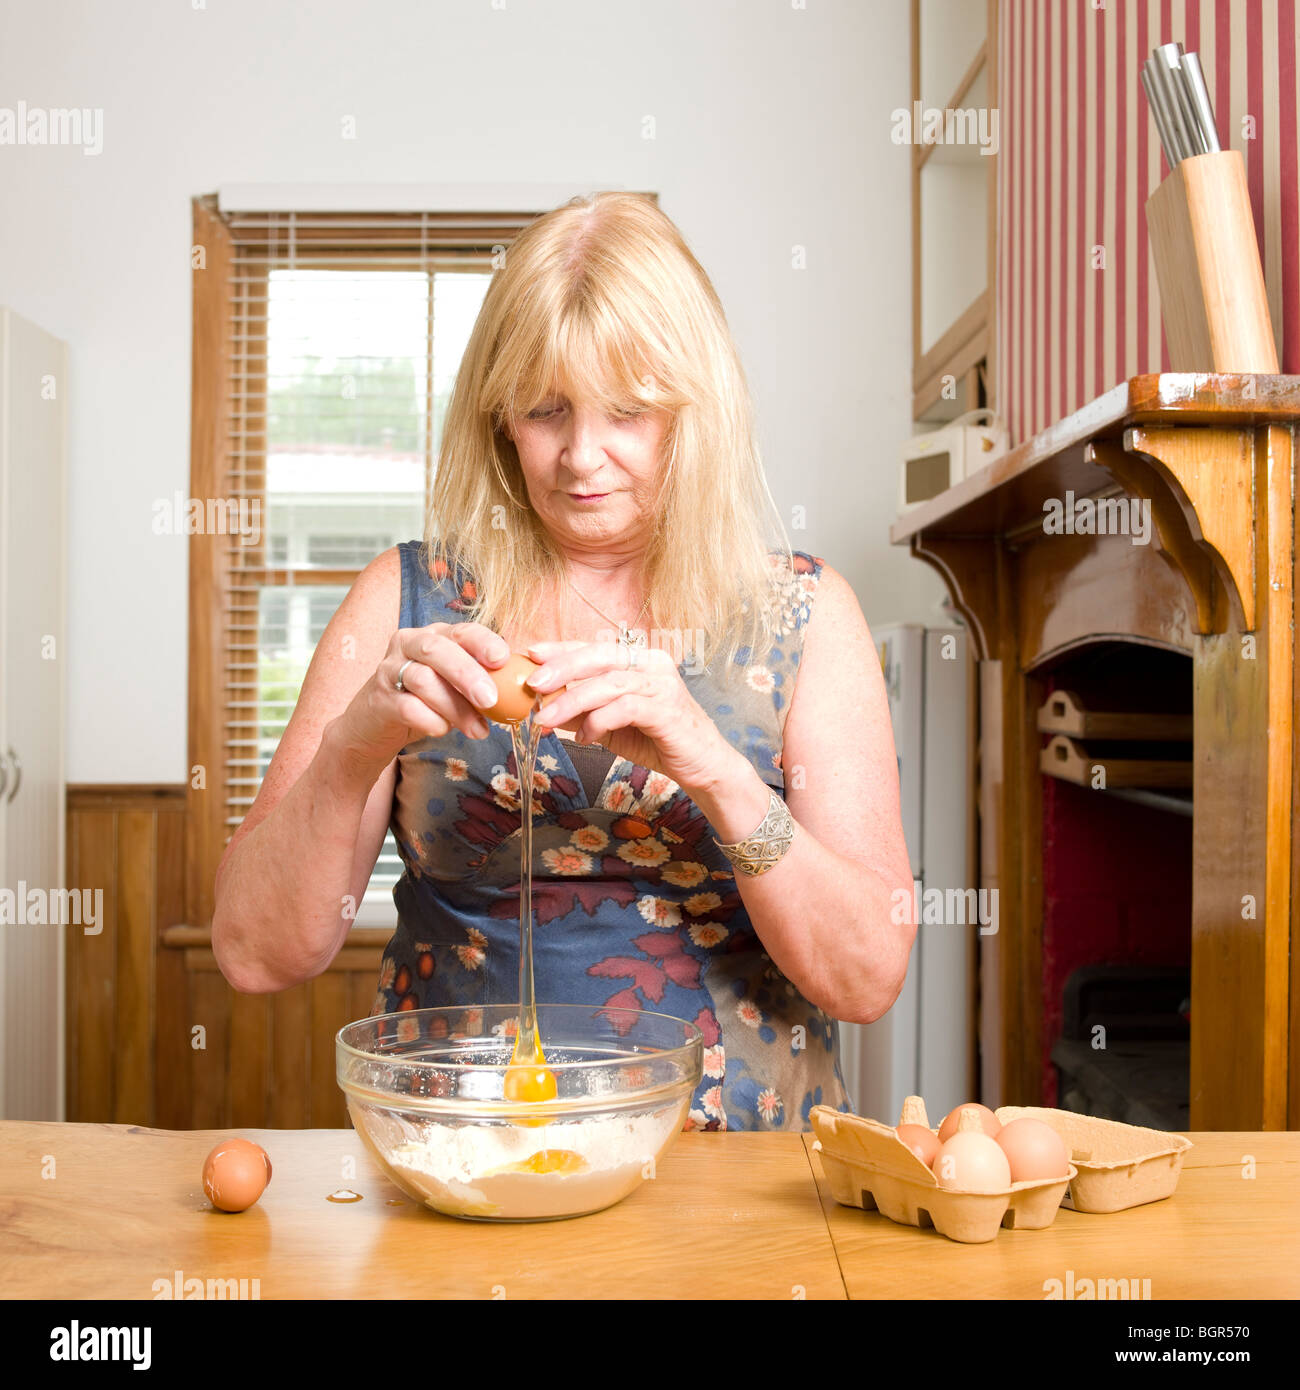 women cracking eggs into mixing bowl of flour with eggs shell next to bowl - Stock Image